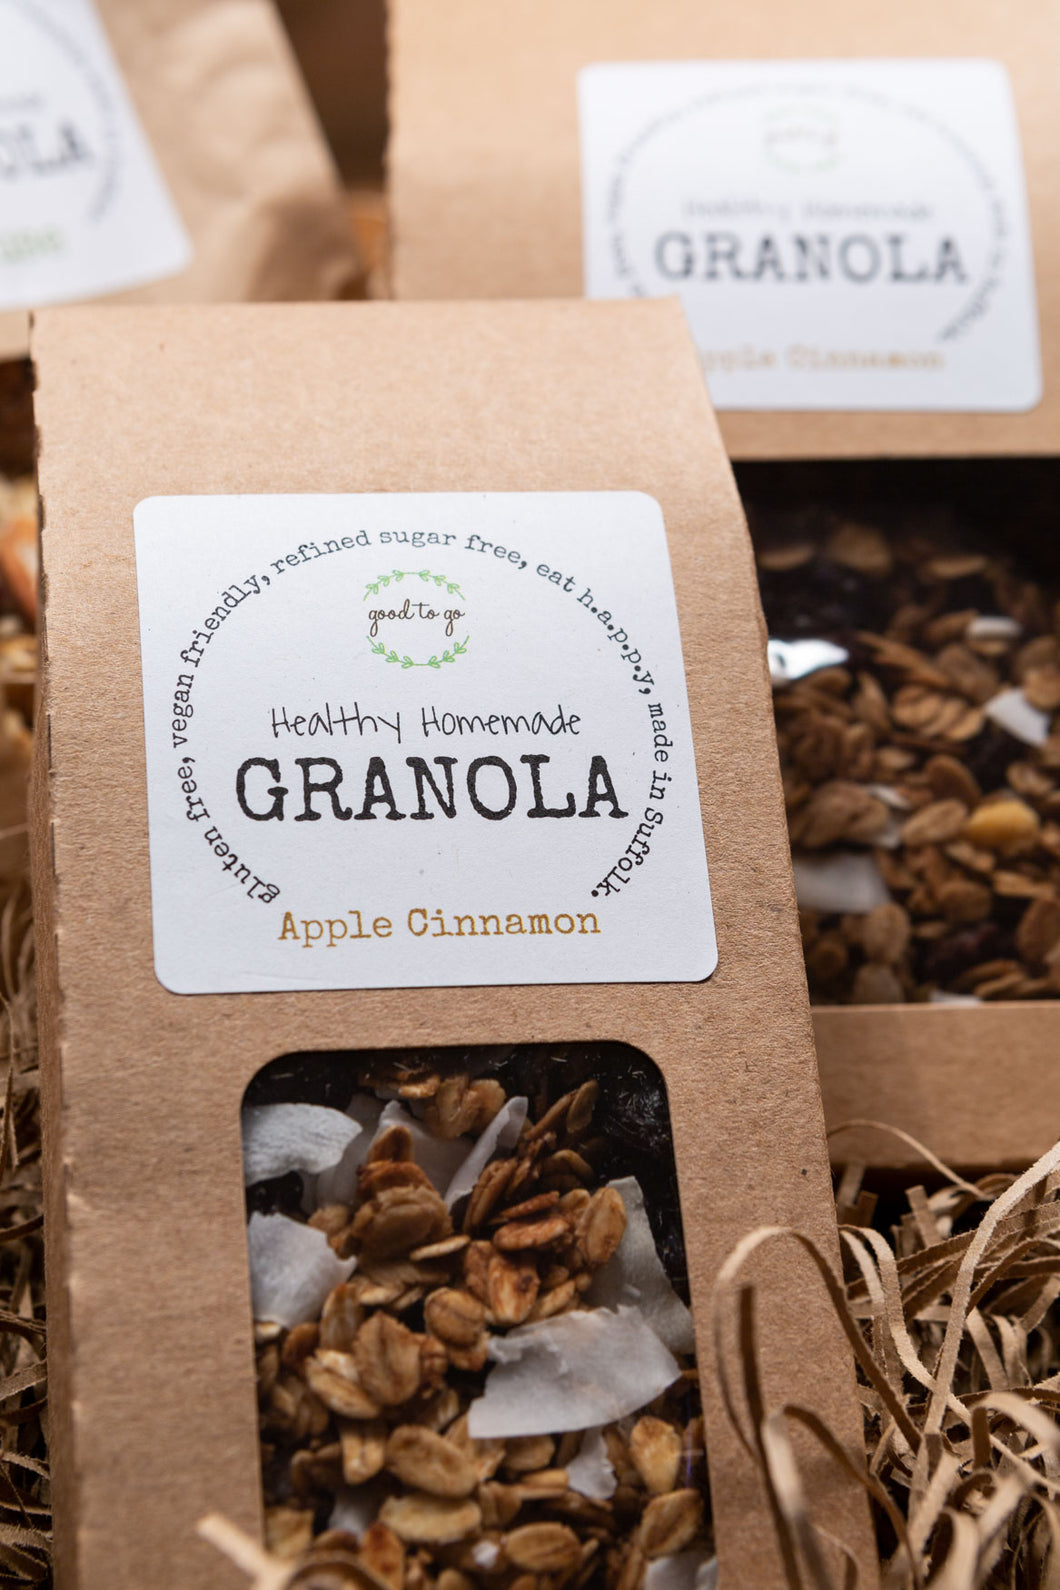 Healthy Homemade Granola - Apple Cinnamon